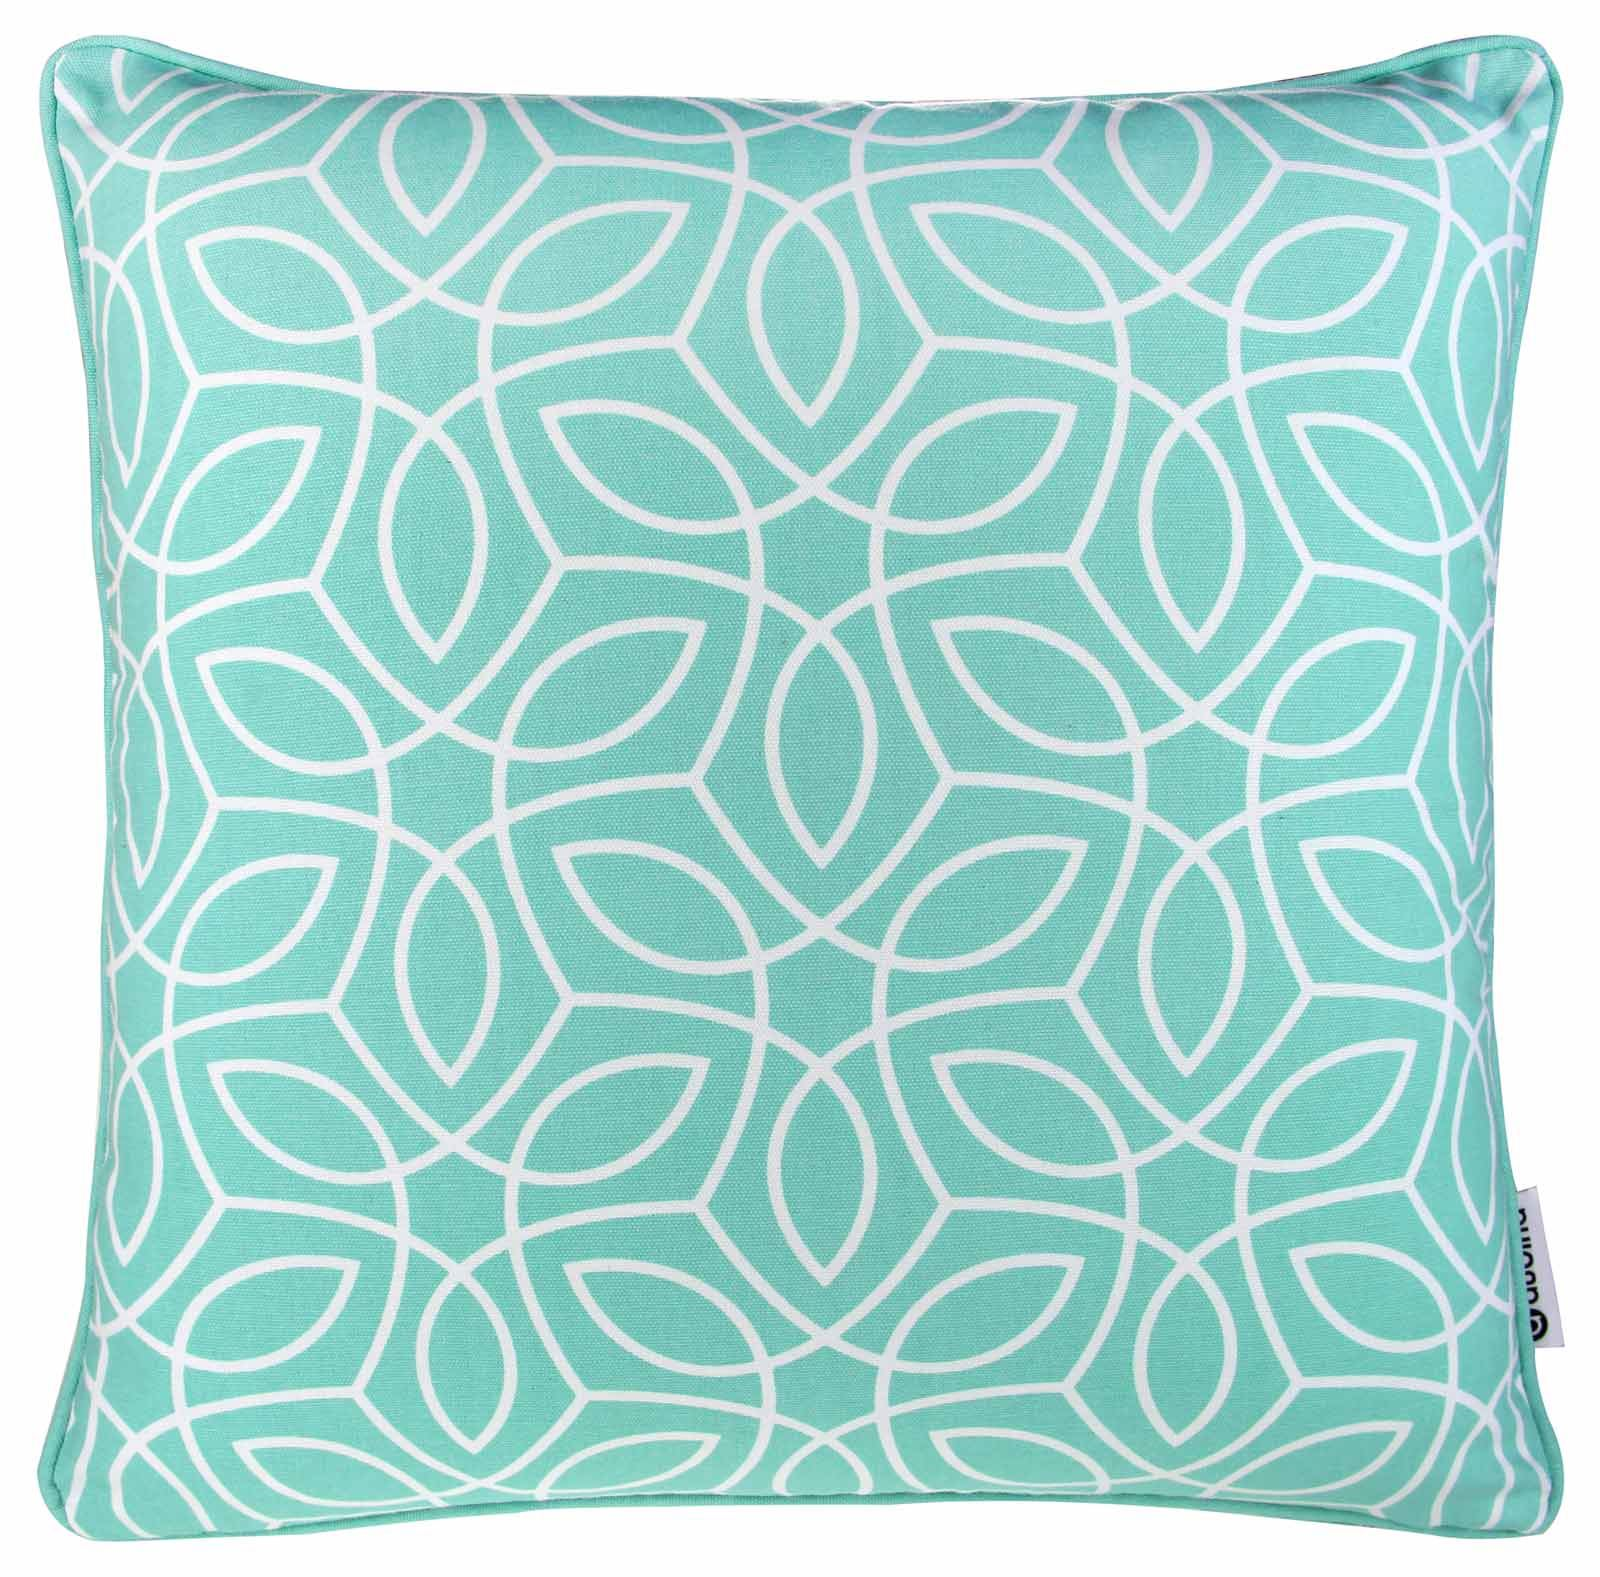 MODERN GEOMETRIC CUSHION COVERS 100% COTTON PRINTED THROW PILLOW COVER 18